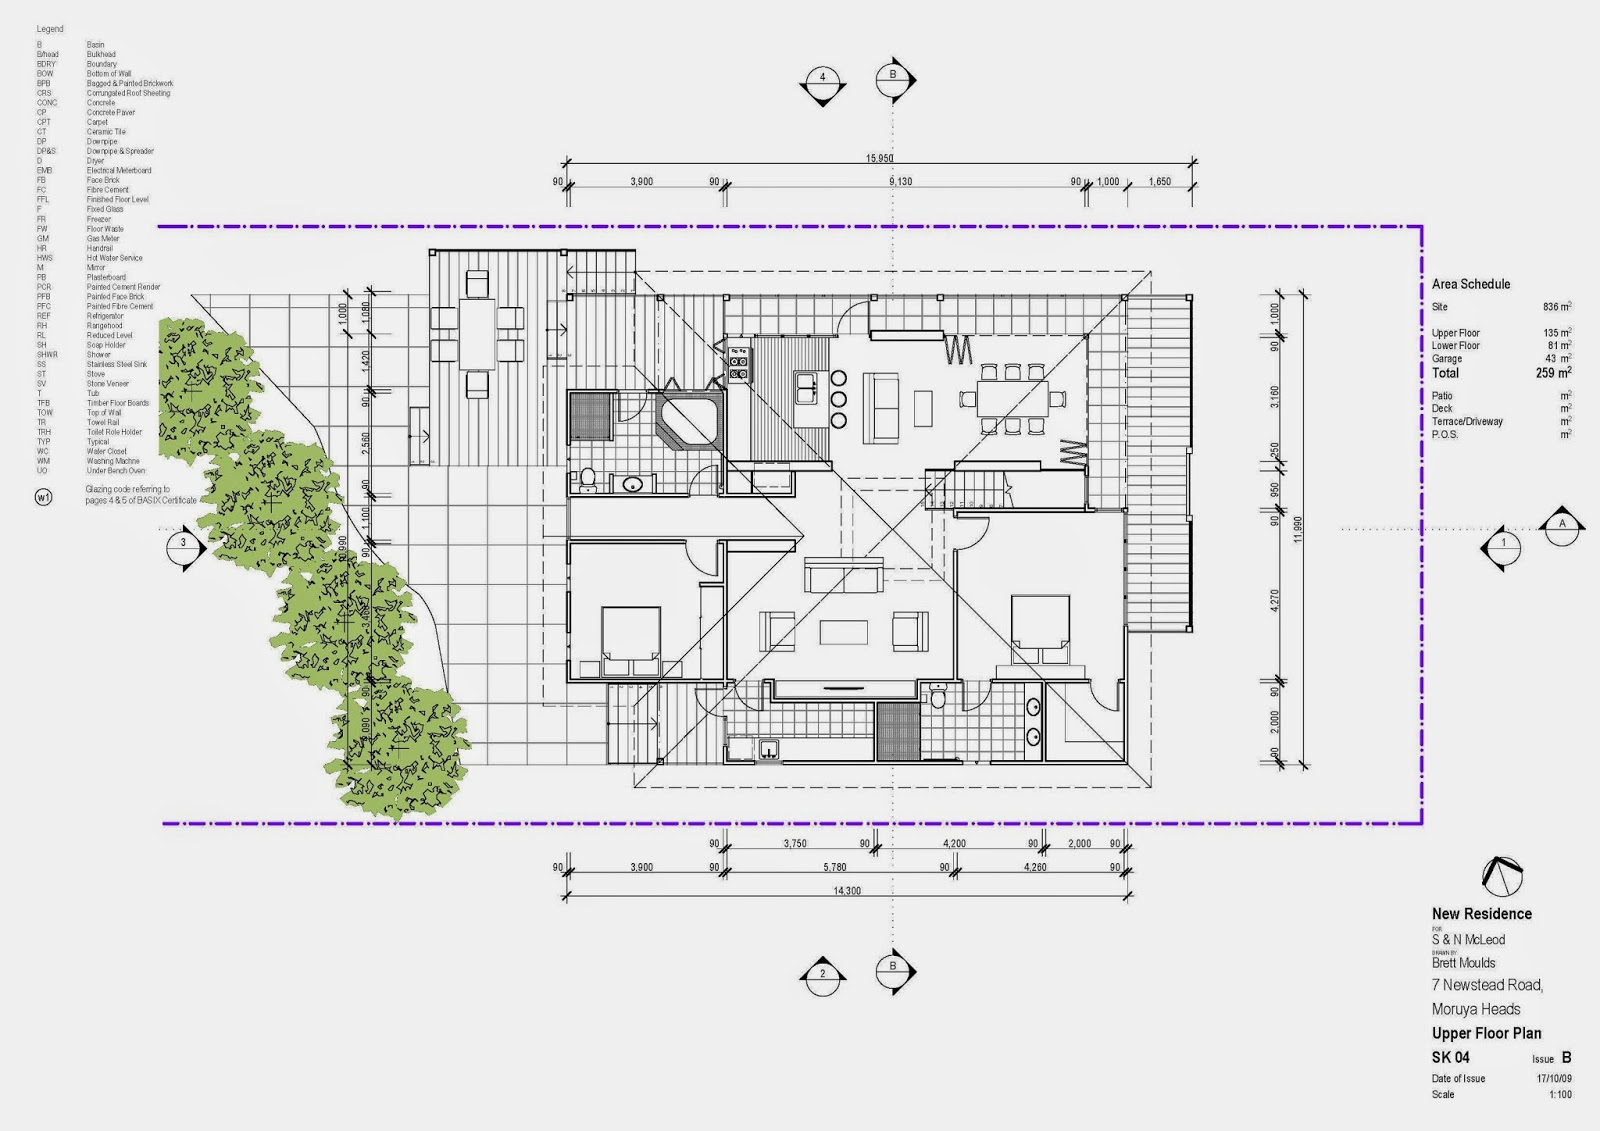 Architectural floor plan architectural floor plan Architectural floor plans